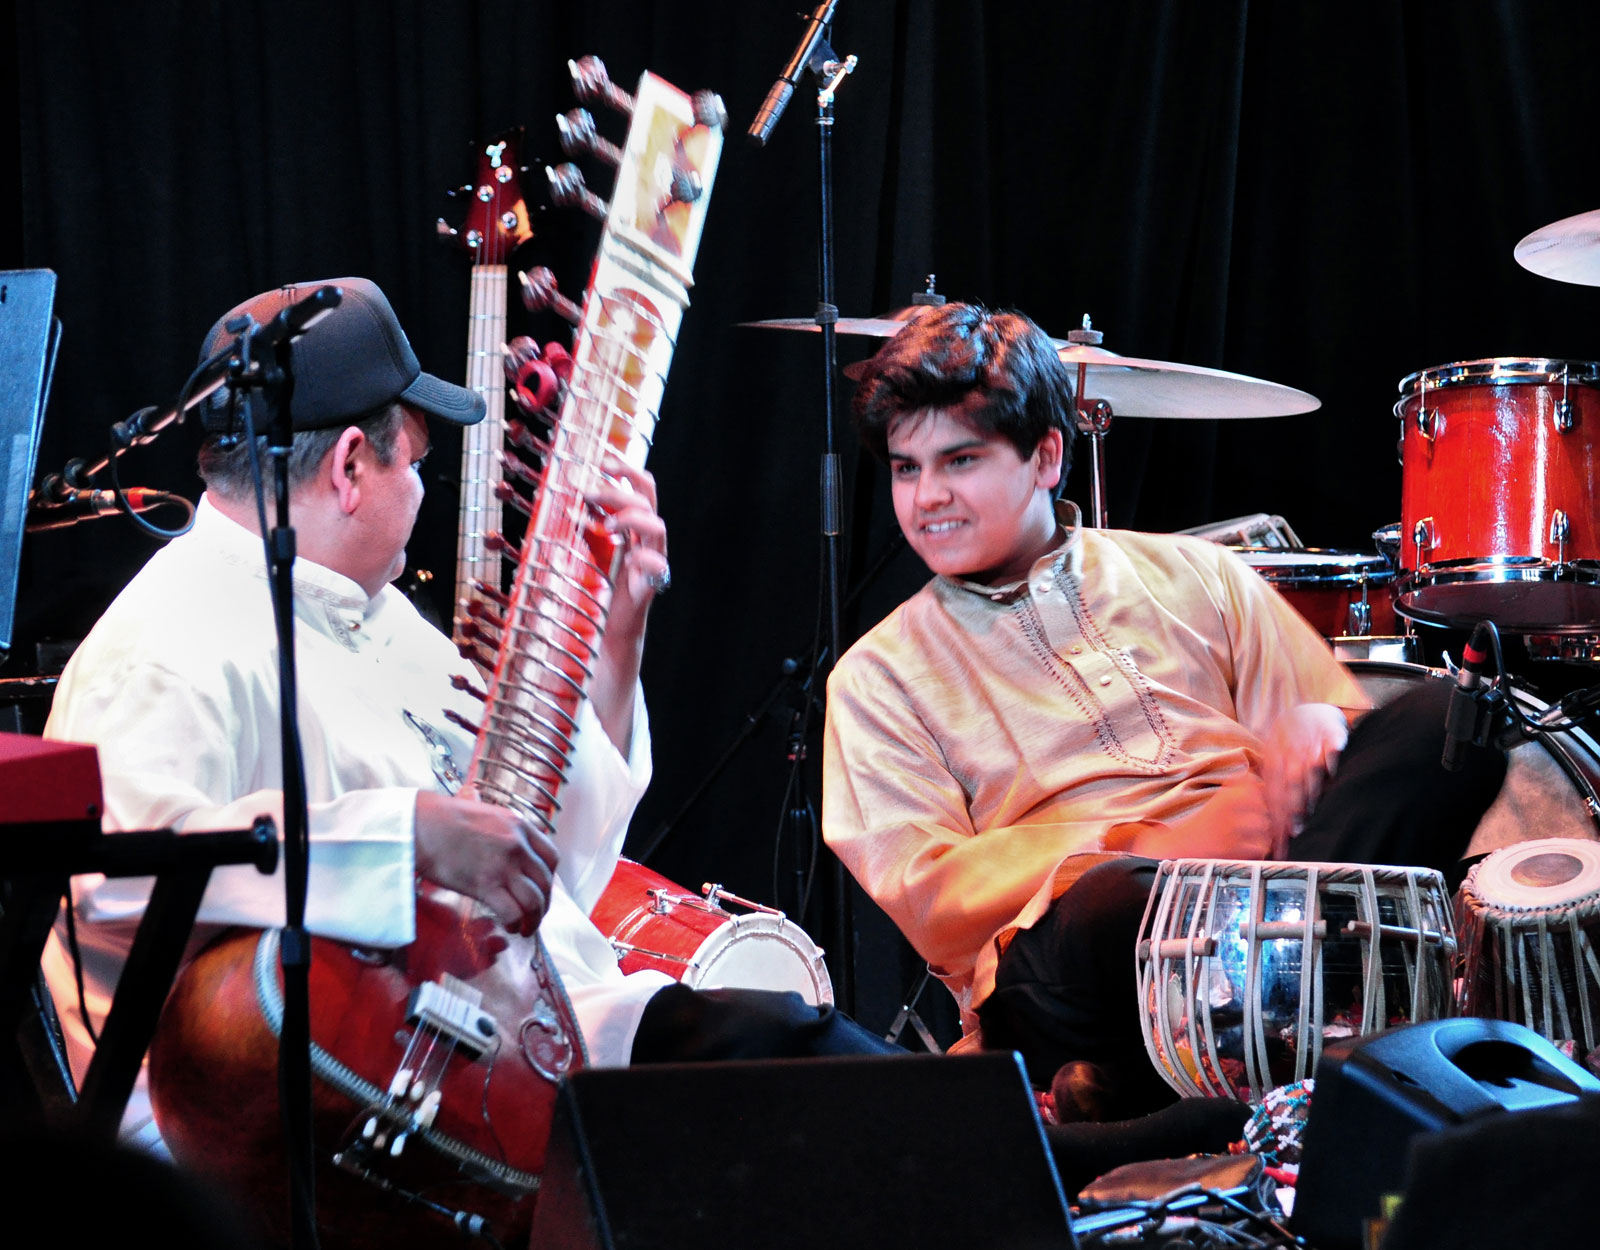 Ashwin Batish and Keshav Batish playing traditional North Indian sitar and tabla - live at the Kuumbwa Jazz Center, Santa Cruz. All rights reserved. �2012 Ashwin Batish. Copyrighted image. Photographer Chris Bratt